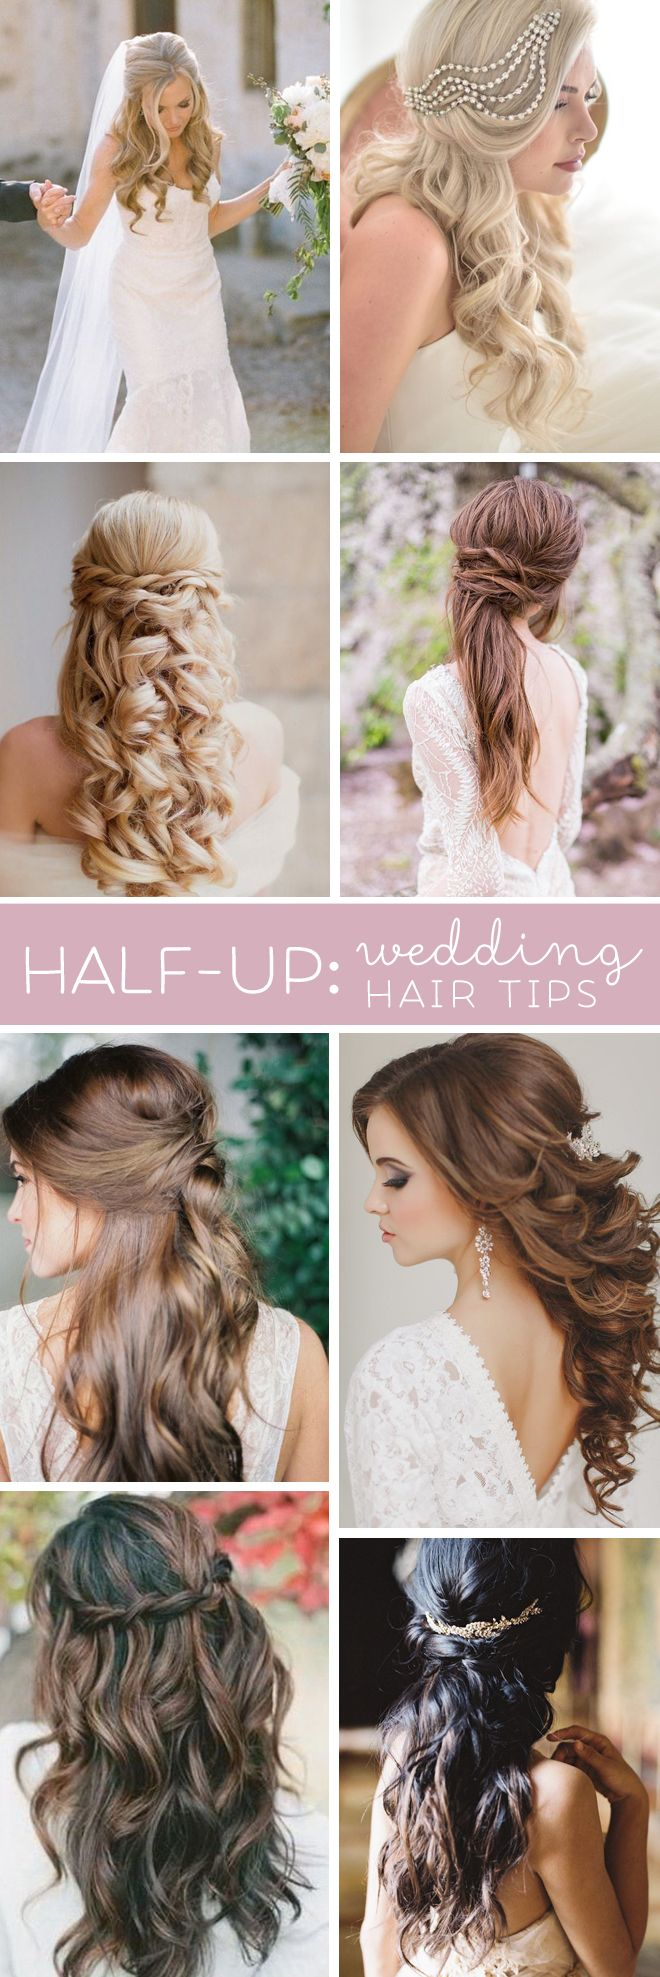 Terrific tips for wearing half-up hair styles for your wedding.. Don't forget personalized napkins for all of your wedding events! From the engagement party to the reception! www.napkinspersonalized.com